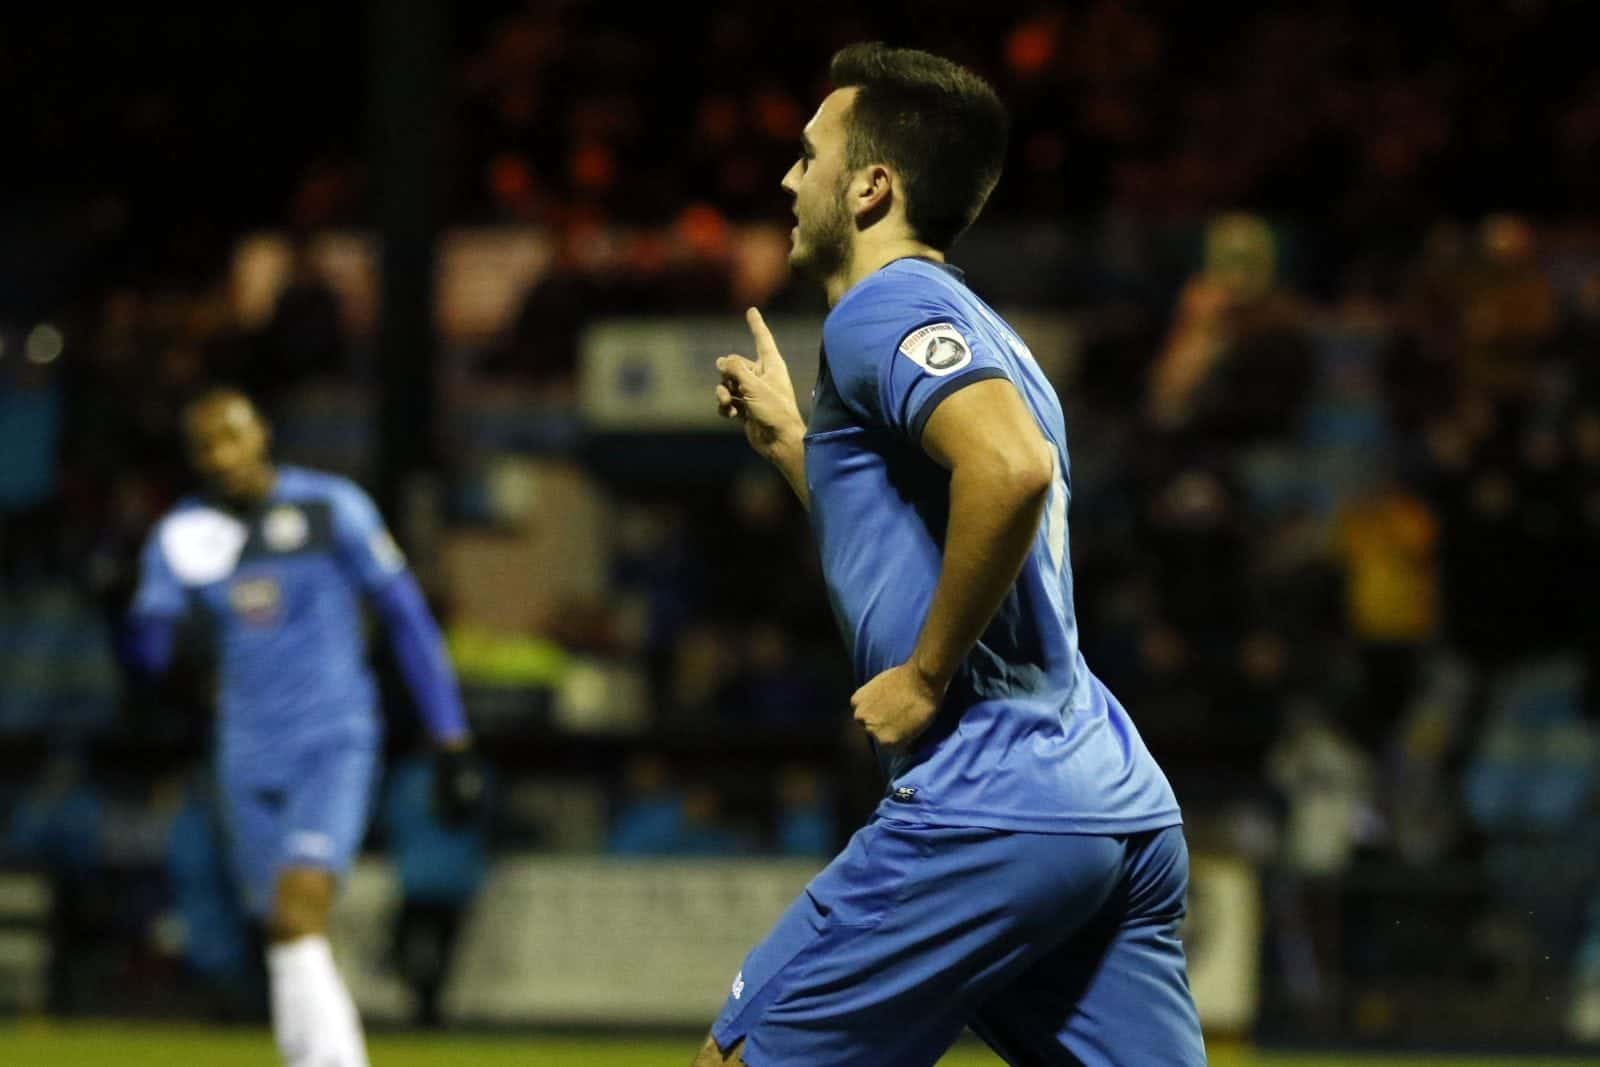 Rhys Turner, Stockport County